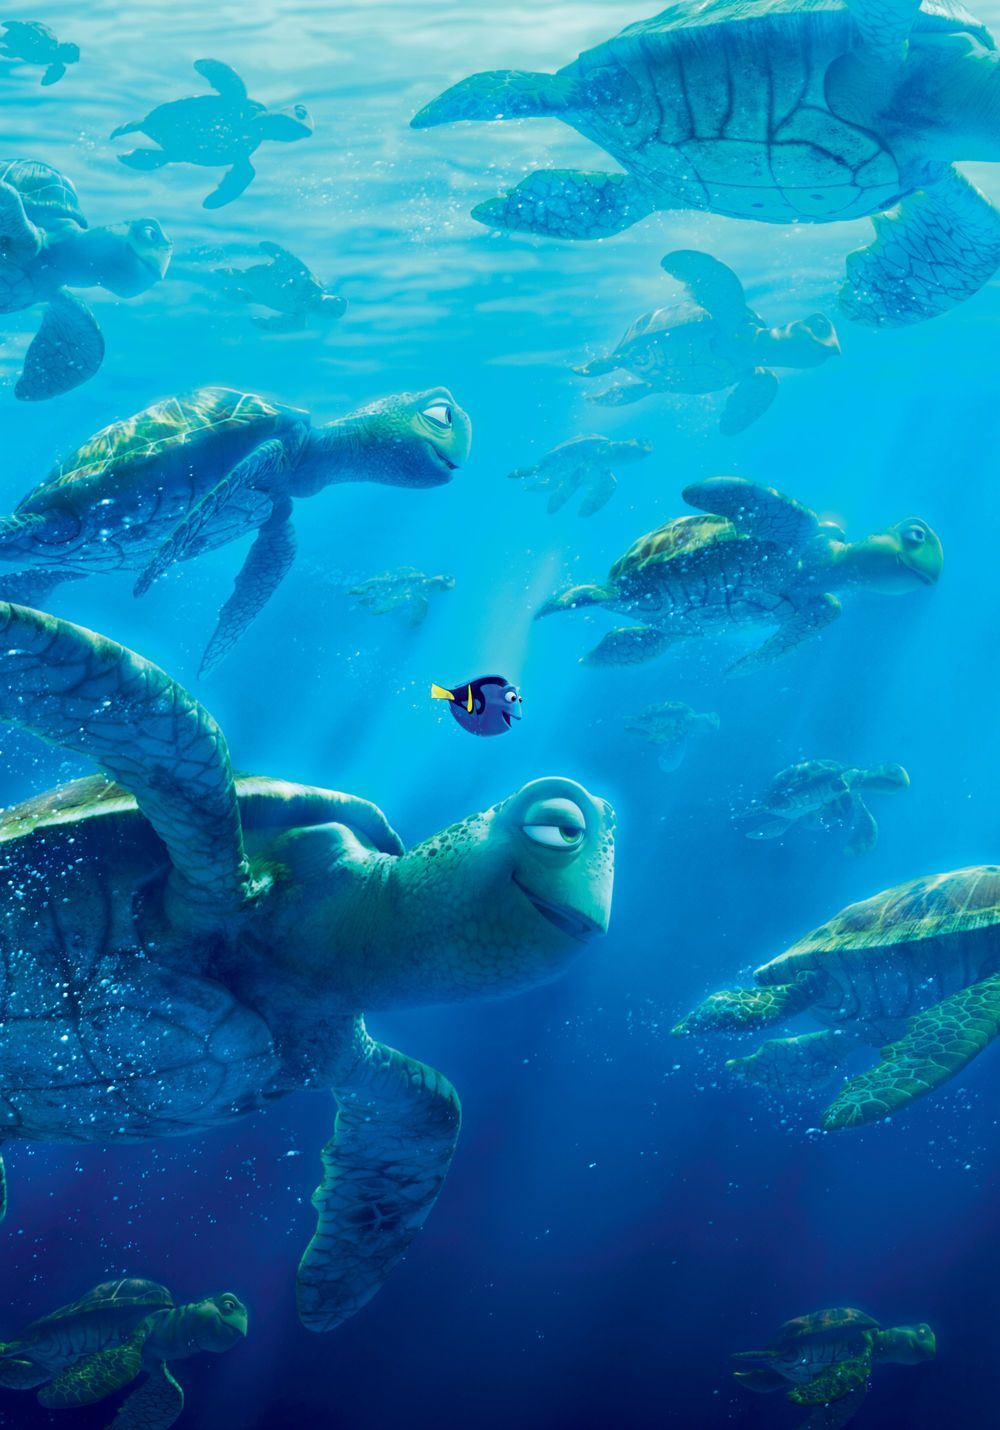 Images from Finding Dory.